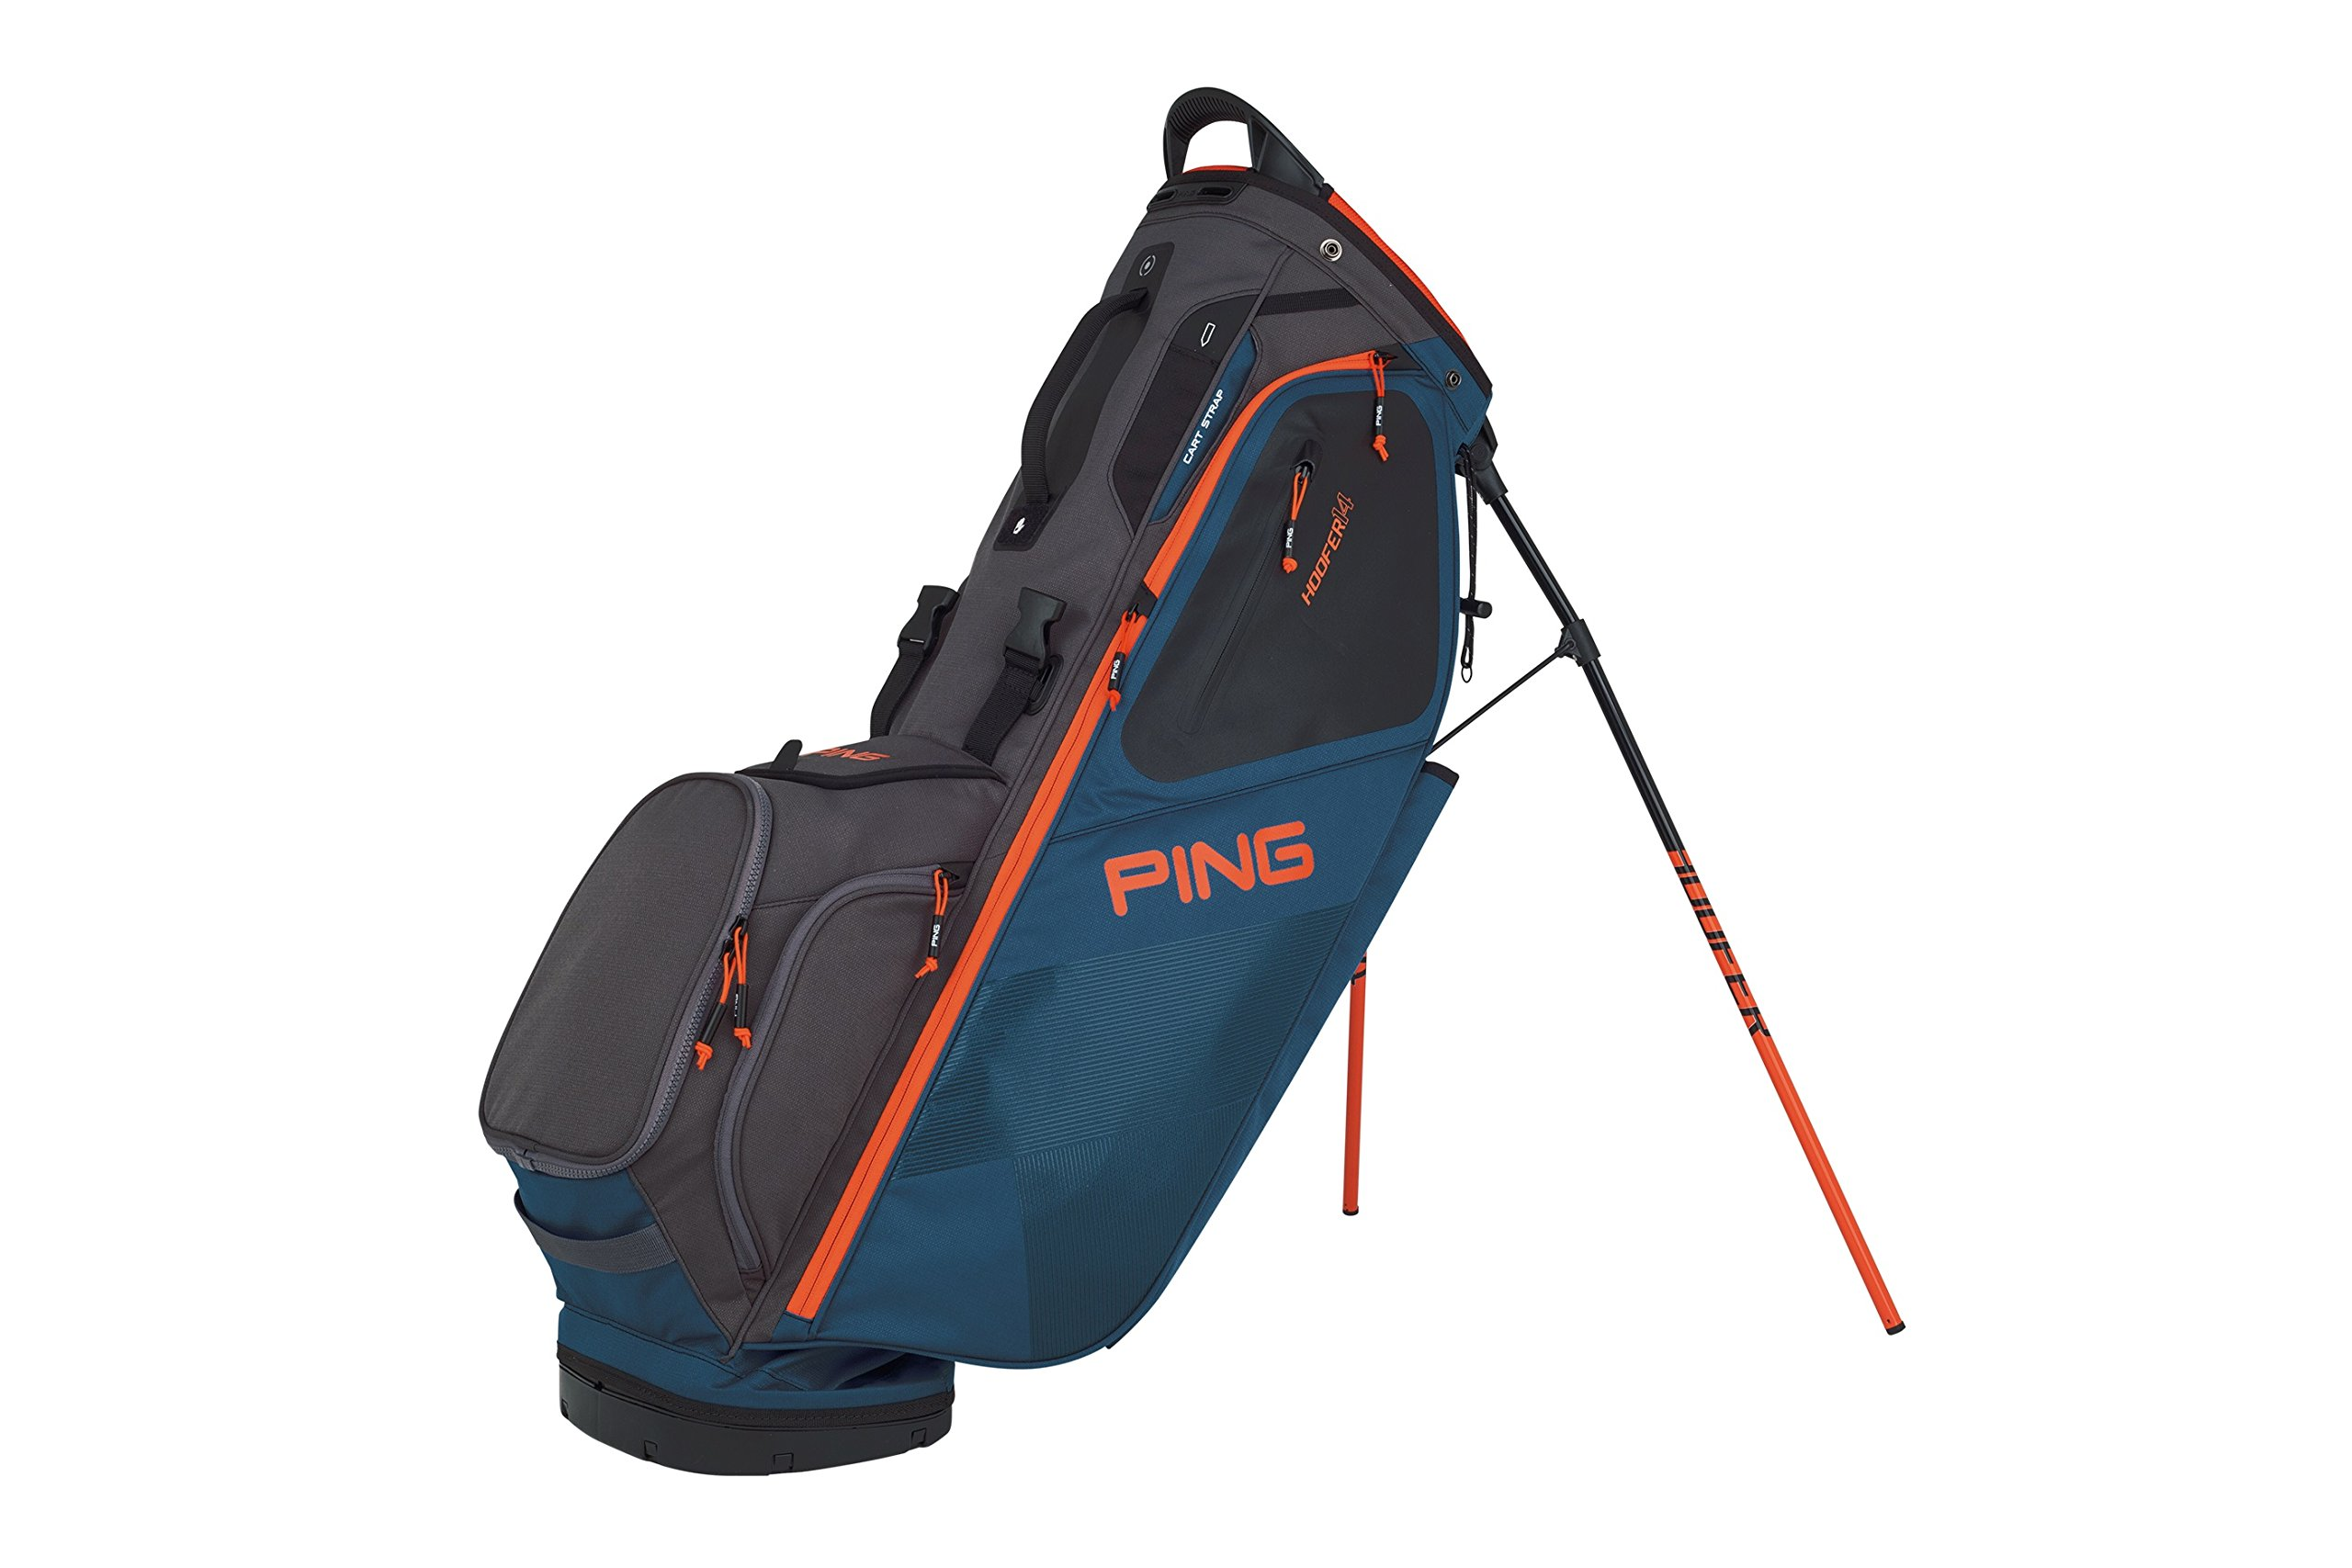 PING 2018 HOOFER 14 181 STAND GOLF BAG 07 DARK TEAL/GRAPHITE/ORANGE